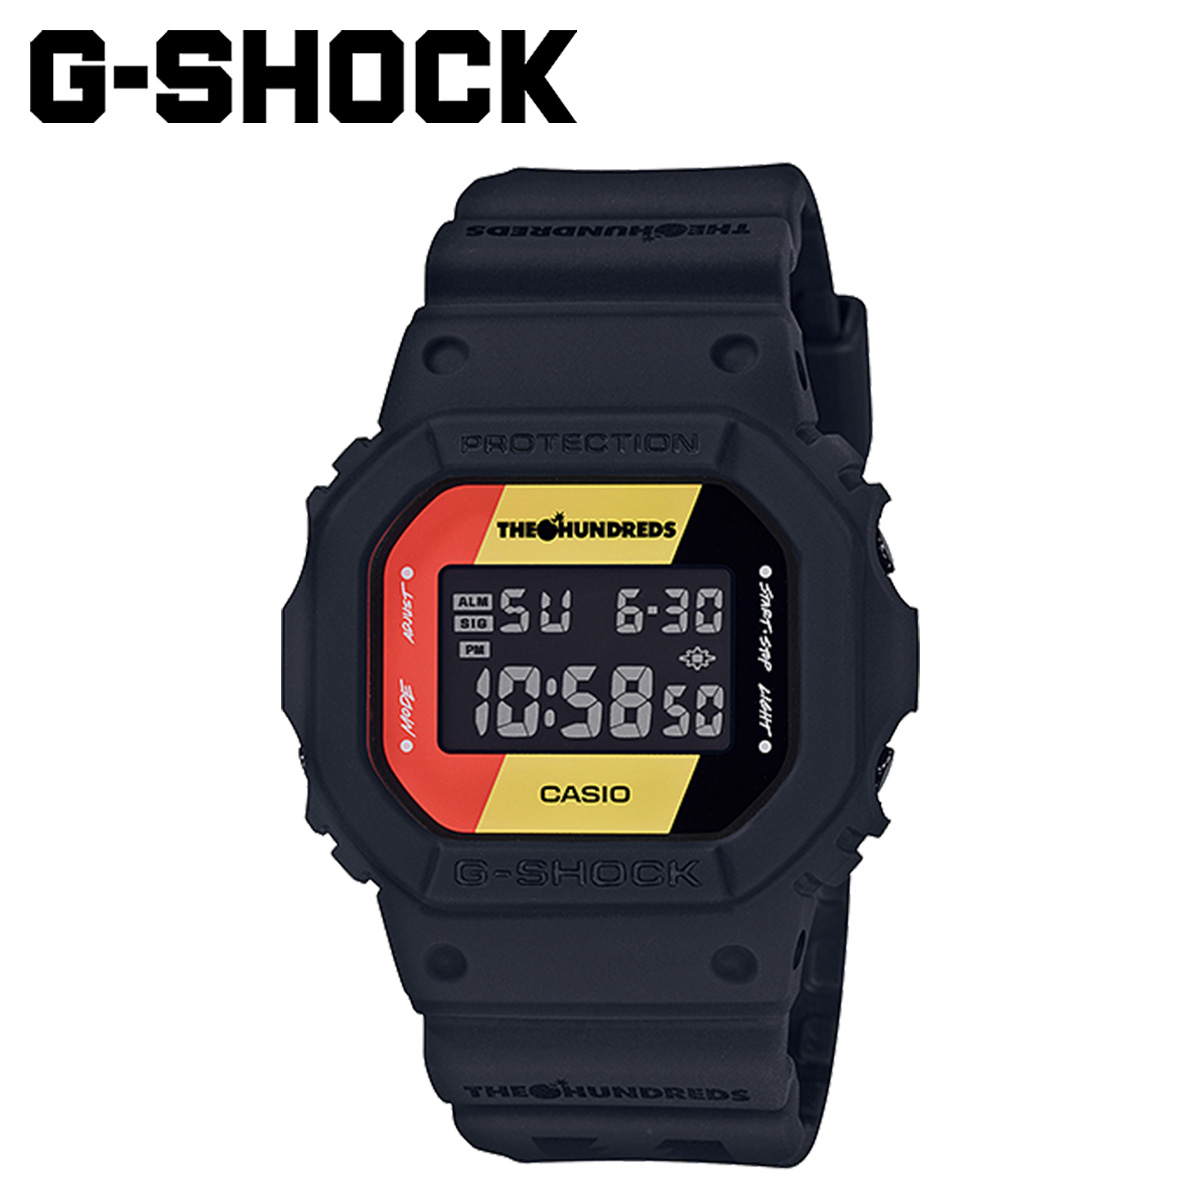 Dw Shop Casio Casio G Shock Watch Dw 5600hdr 1jr The Hundreds Collaboration Black Men Gap Dis Load Planned Shinnyu Load In Reservation Product 11 12